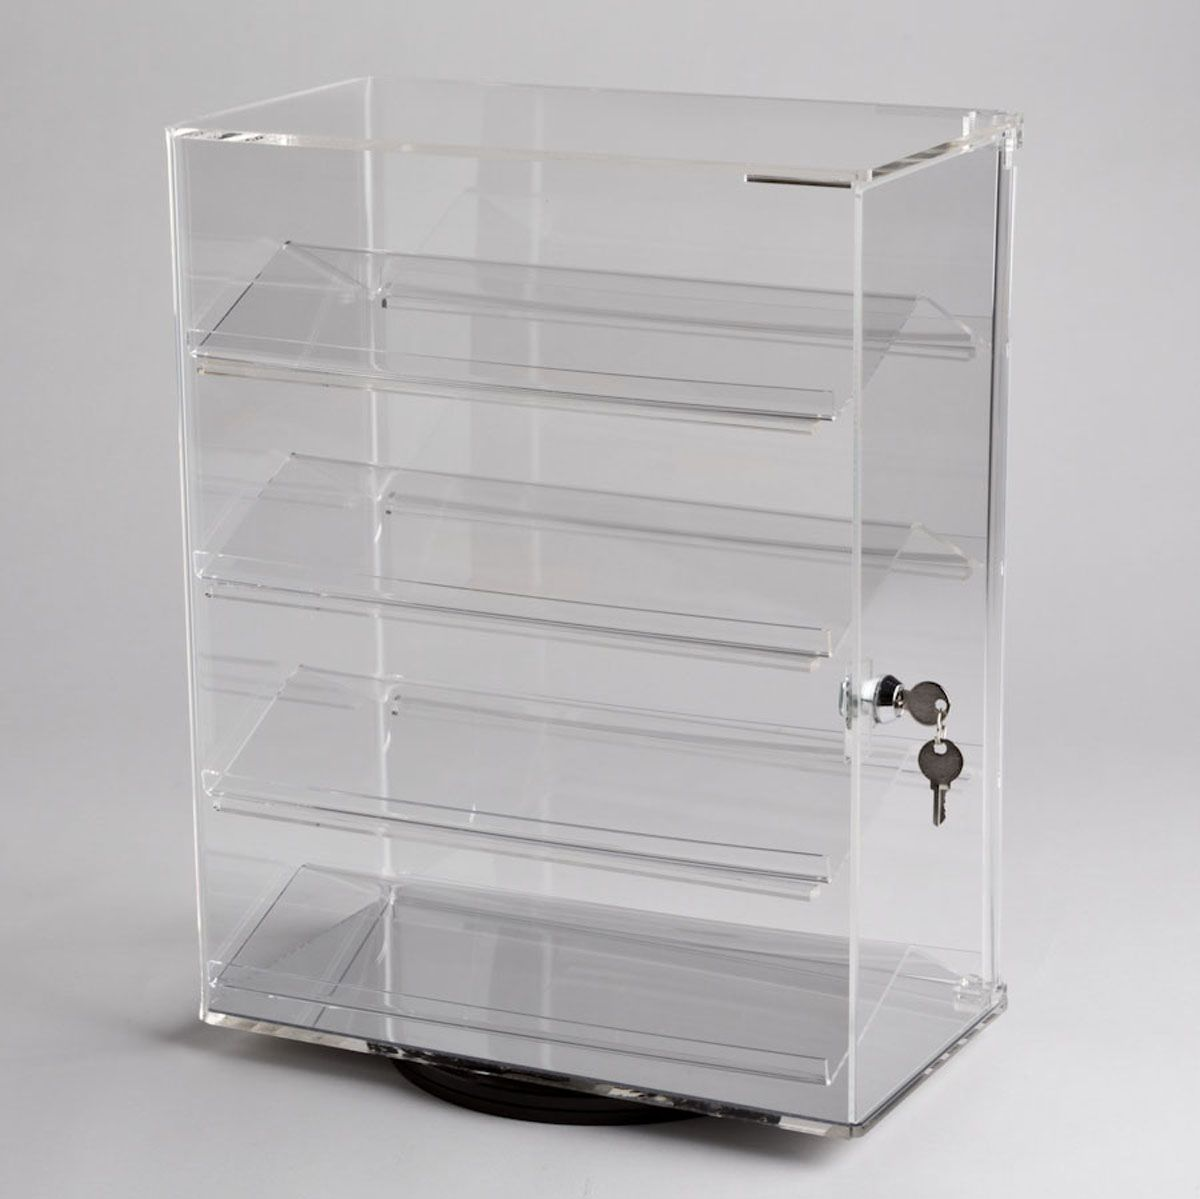 Acrylic Revolving Display Case A B Store Fixtures Store